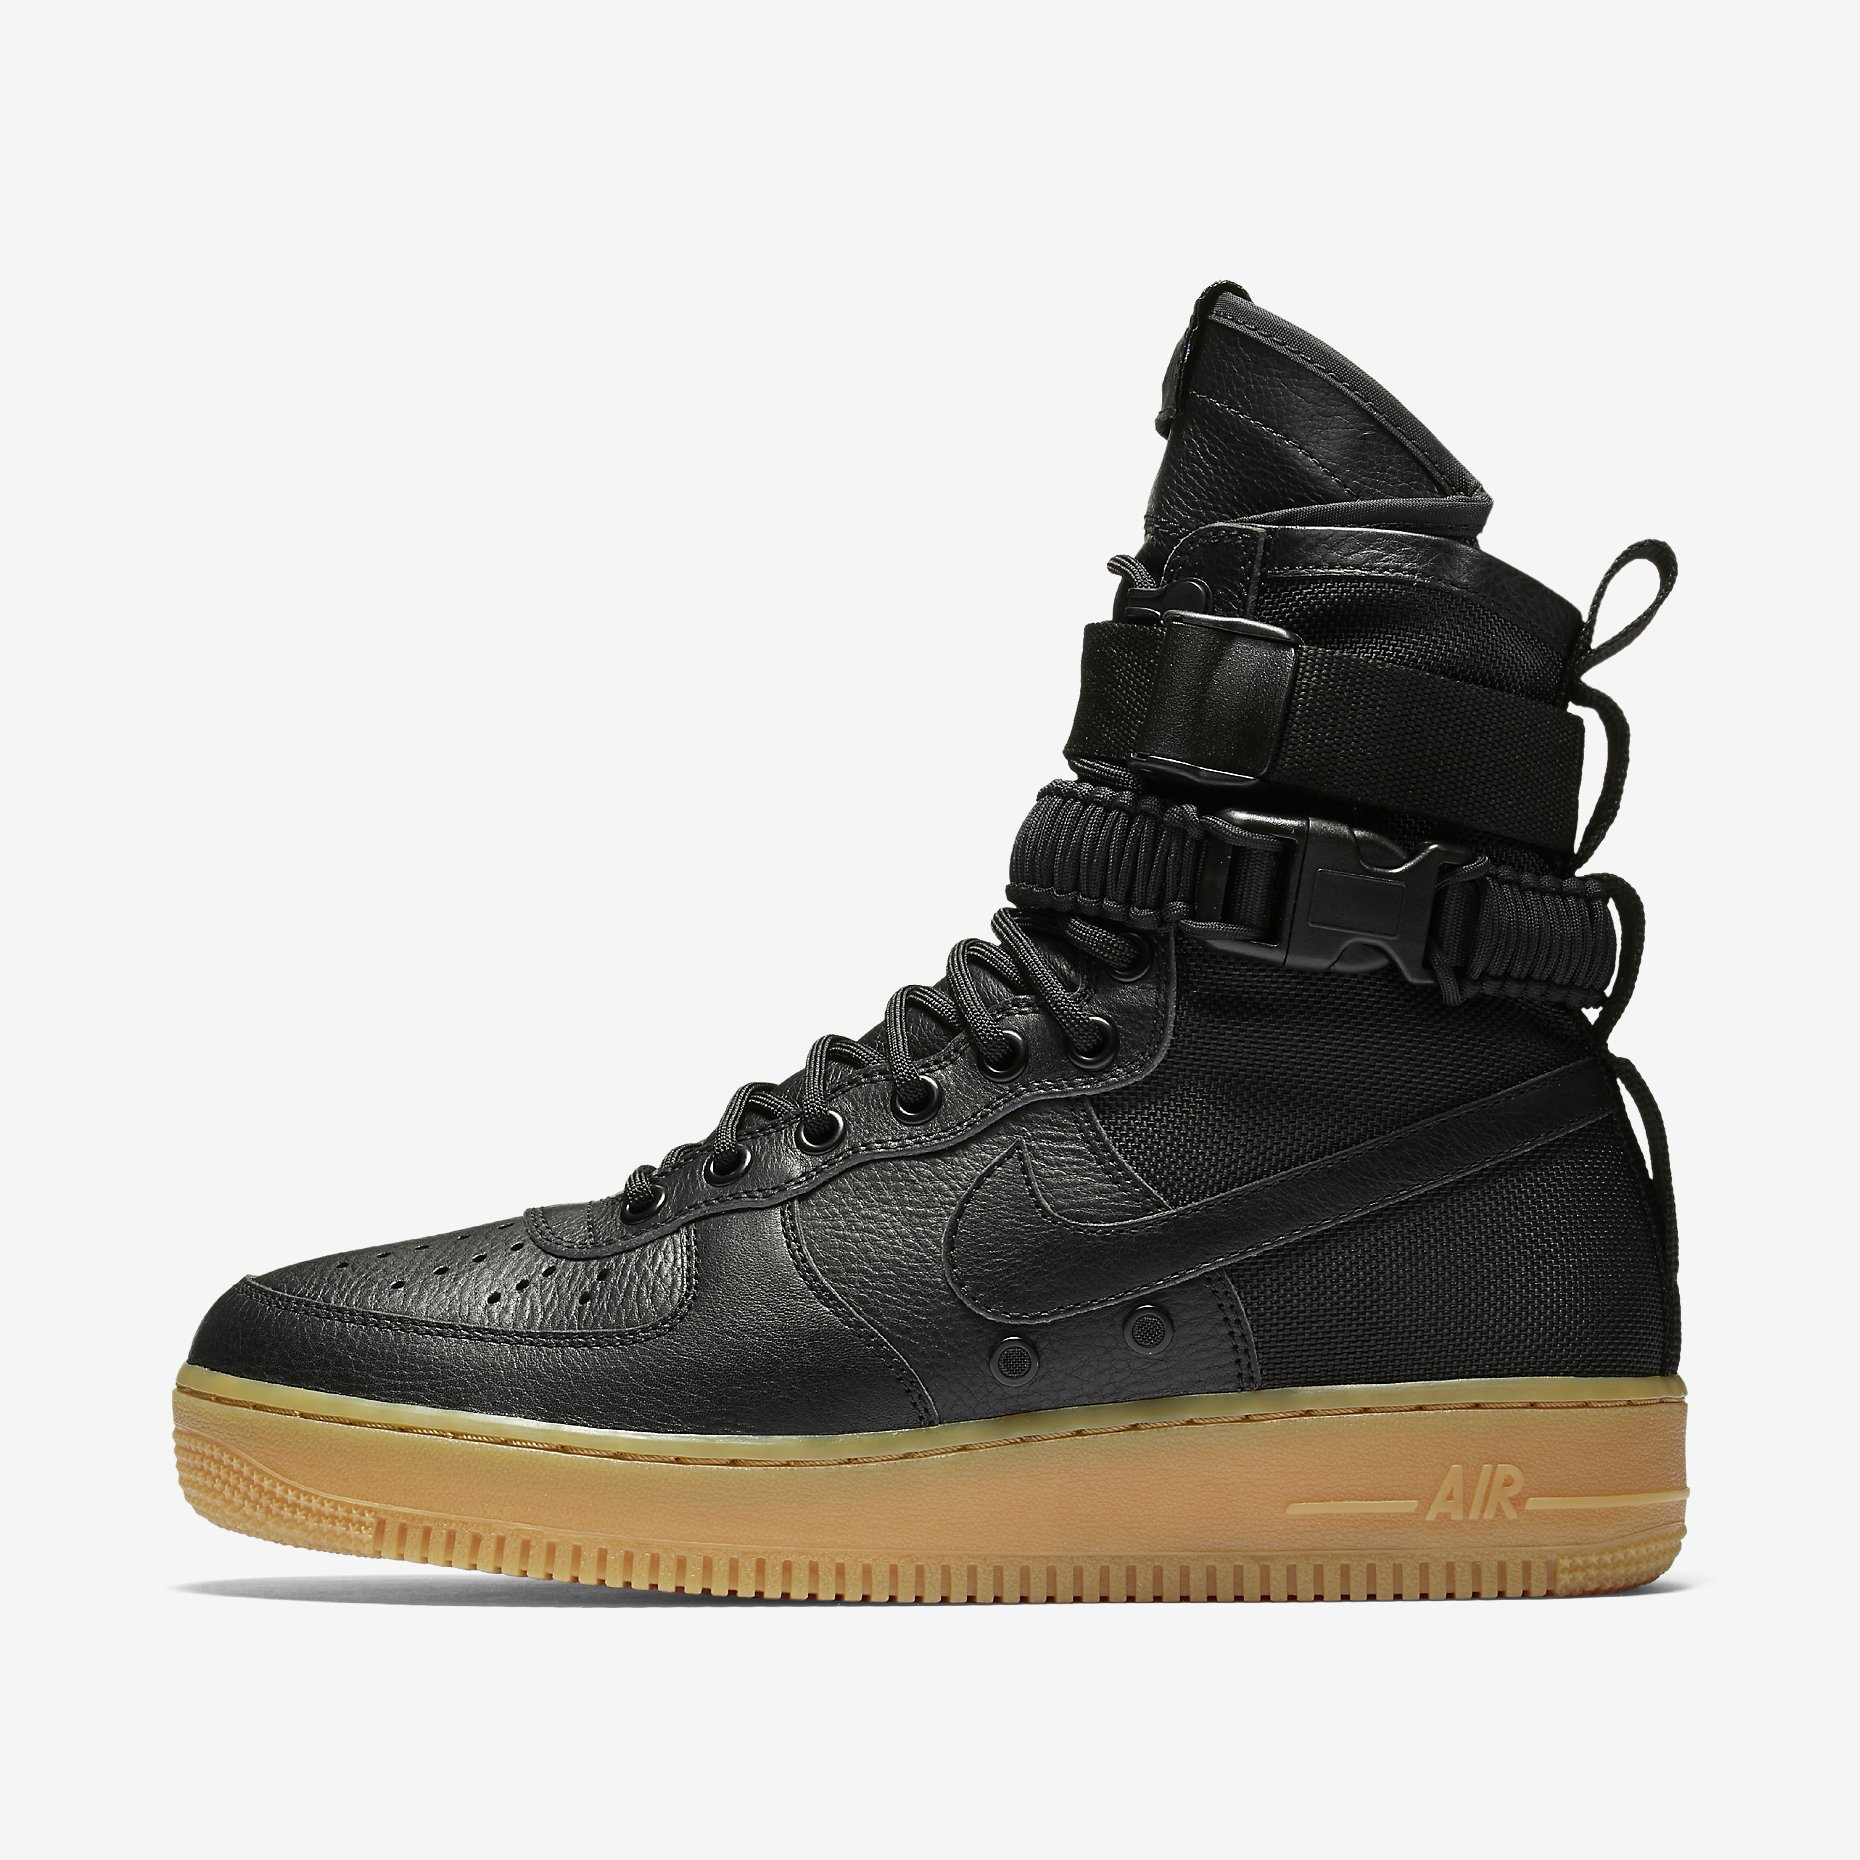 nike-special-field-air-force-1-release-20161112-7